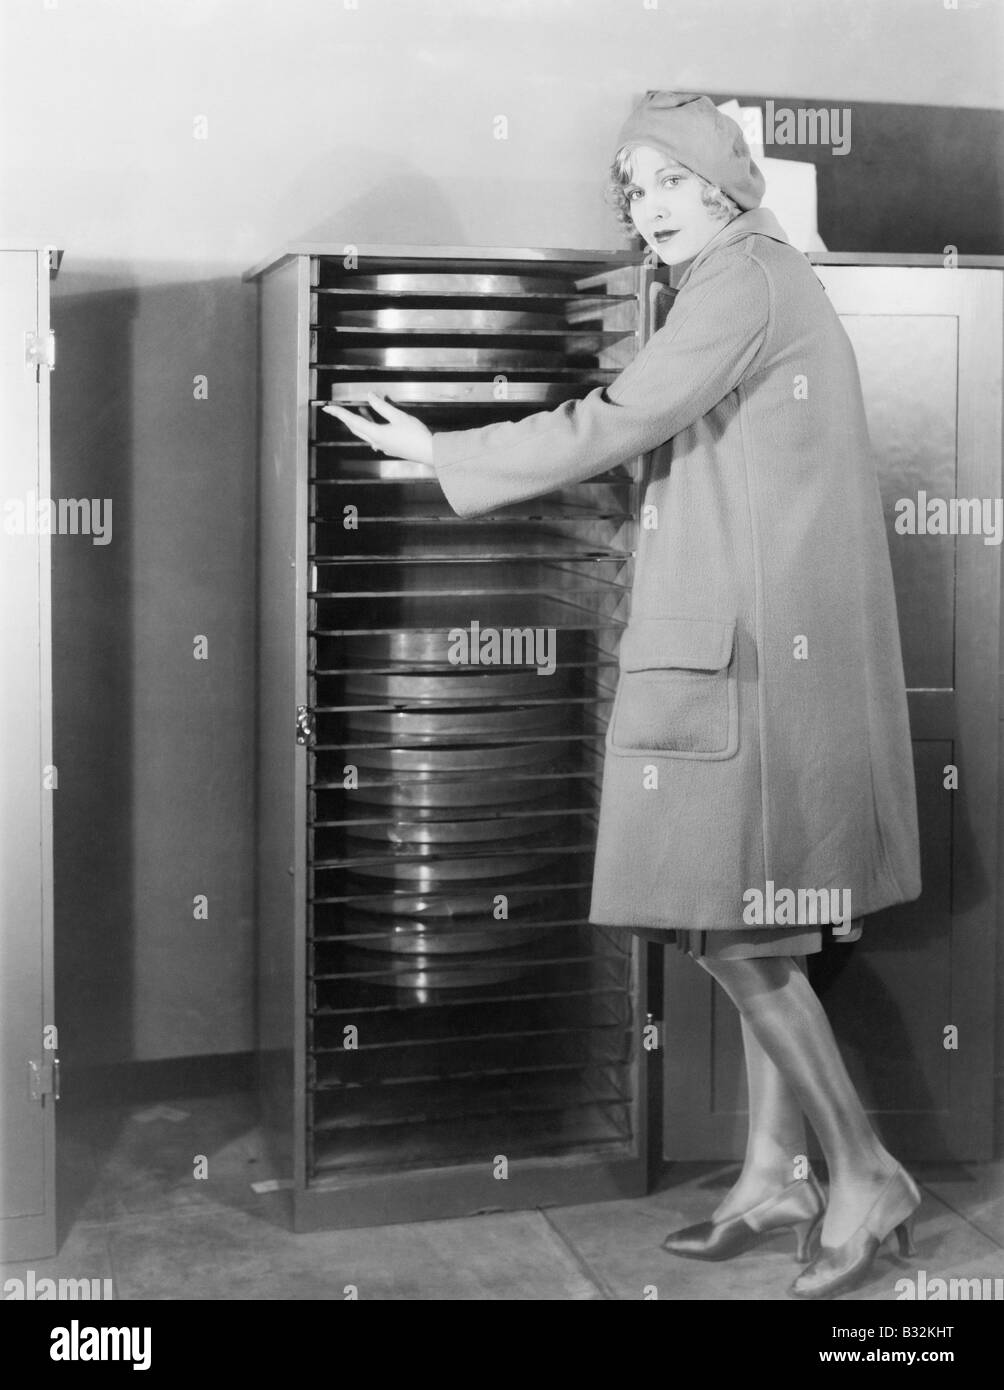 Film Cabinet Stock Photos  Film Cabinet Stock Images  Alamy